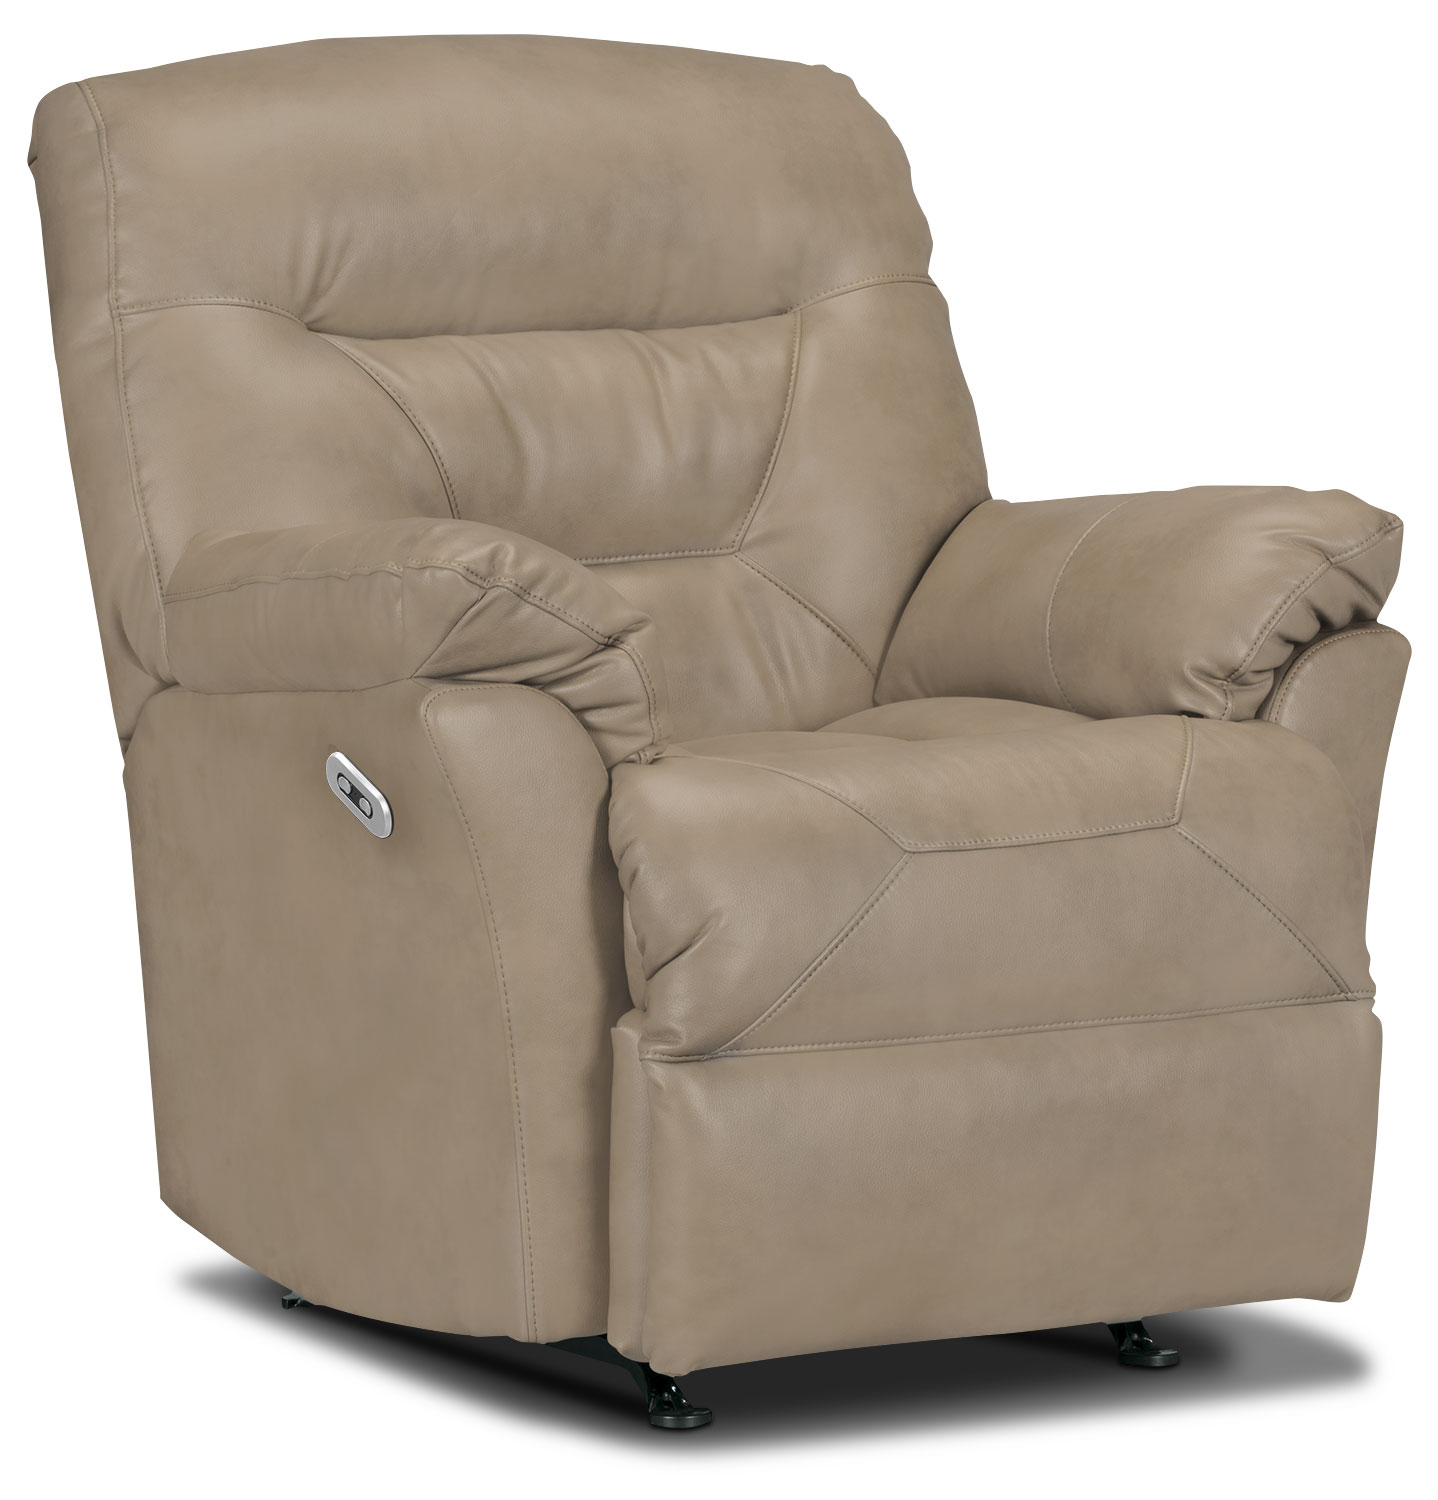 Living Room Furniture - Designed2B Recliner 4579 Genuine Leather Power Recliner - Putty